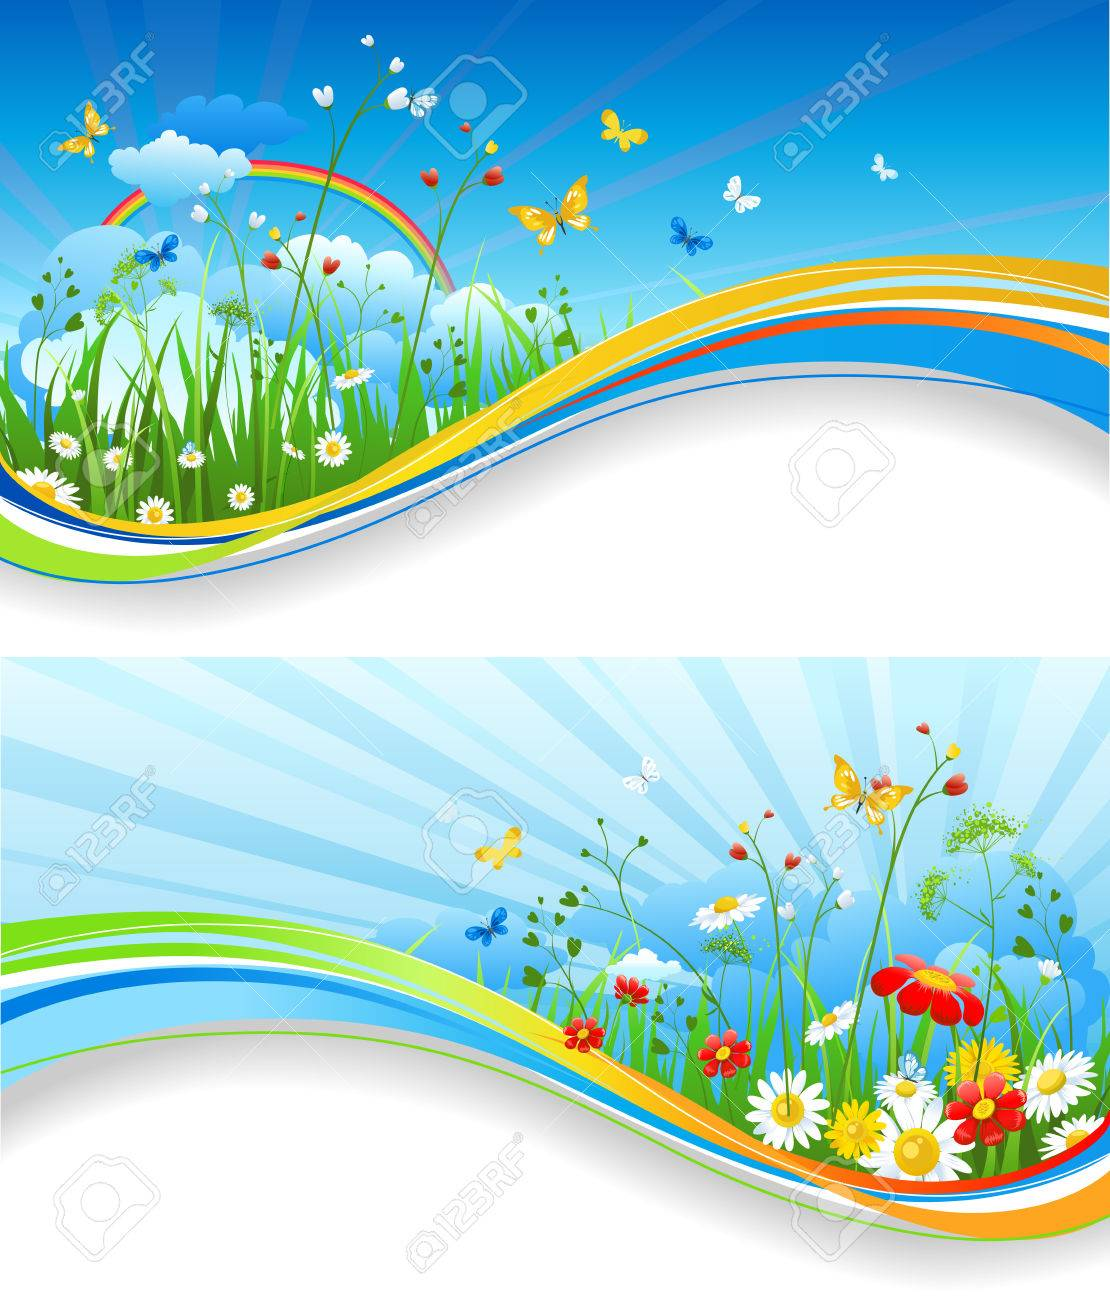 Poster design nature - Nature Template For Design Banner Ticket Leaflet Card Poster And So On